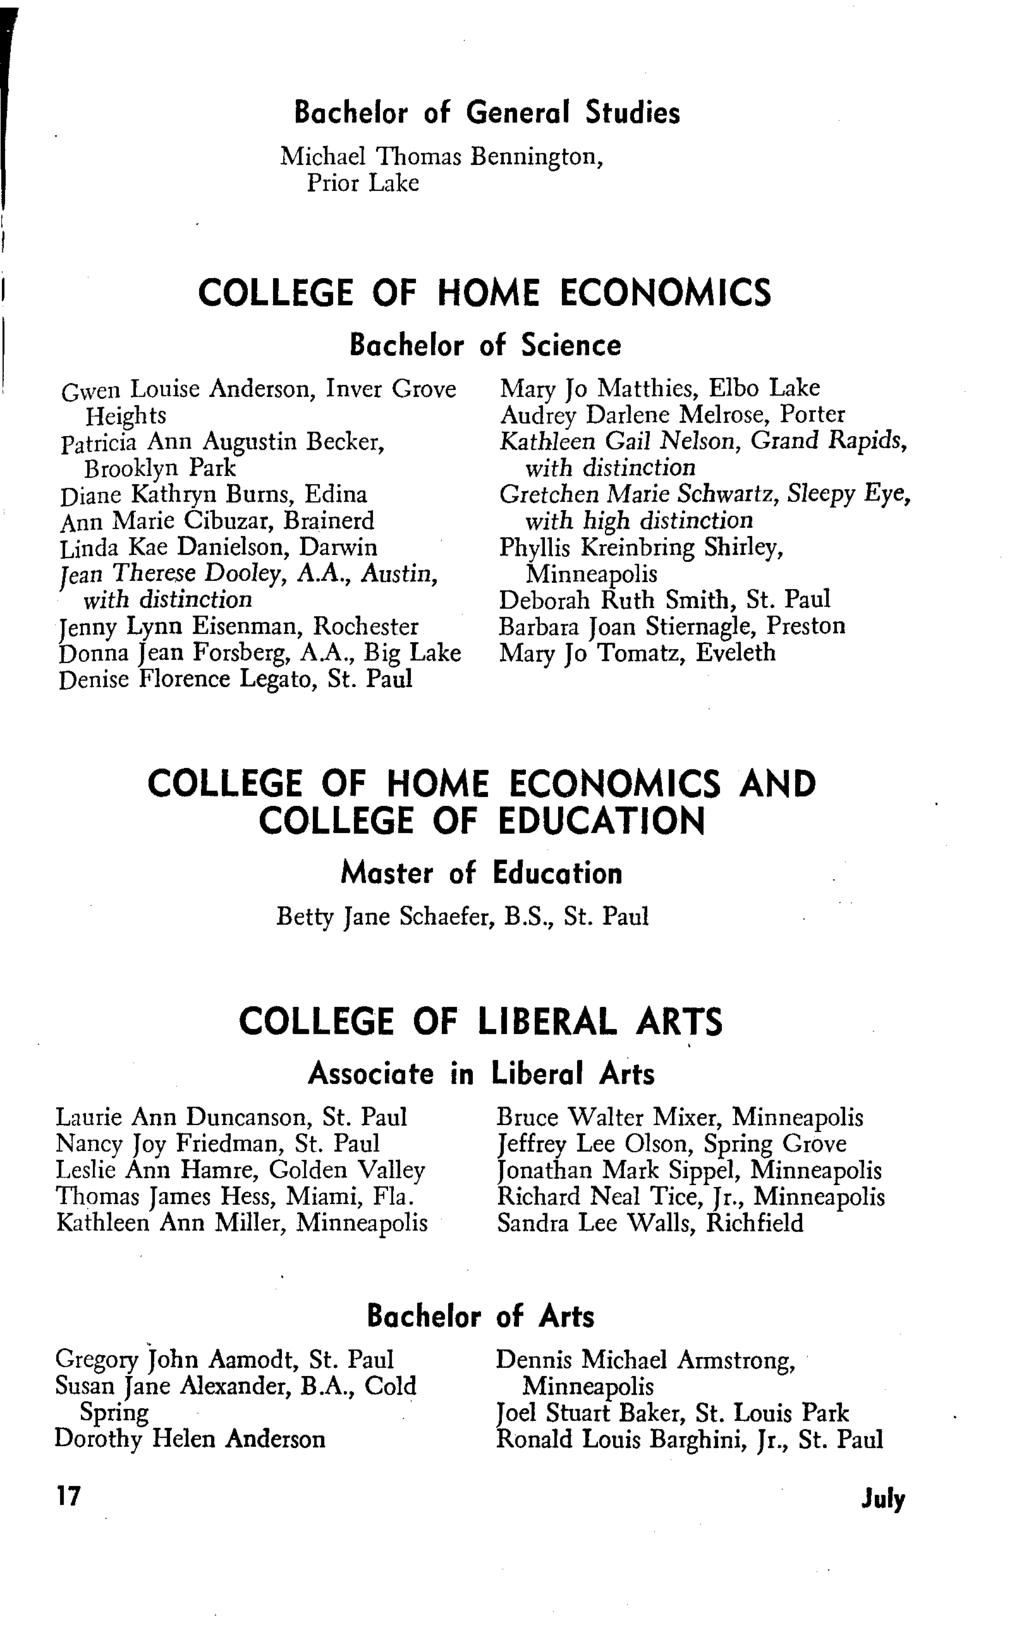 Bachelor of General Studies Michael Thomas Bennington, Prior Lake COLLEGE OF HOME ECONOMICS Gwen Louise Anderson, Inver Grove Heights Patricia Ann Augustin Becker, Brooklyn Park Diane Kathryn Burns,